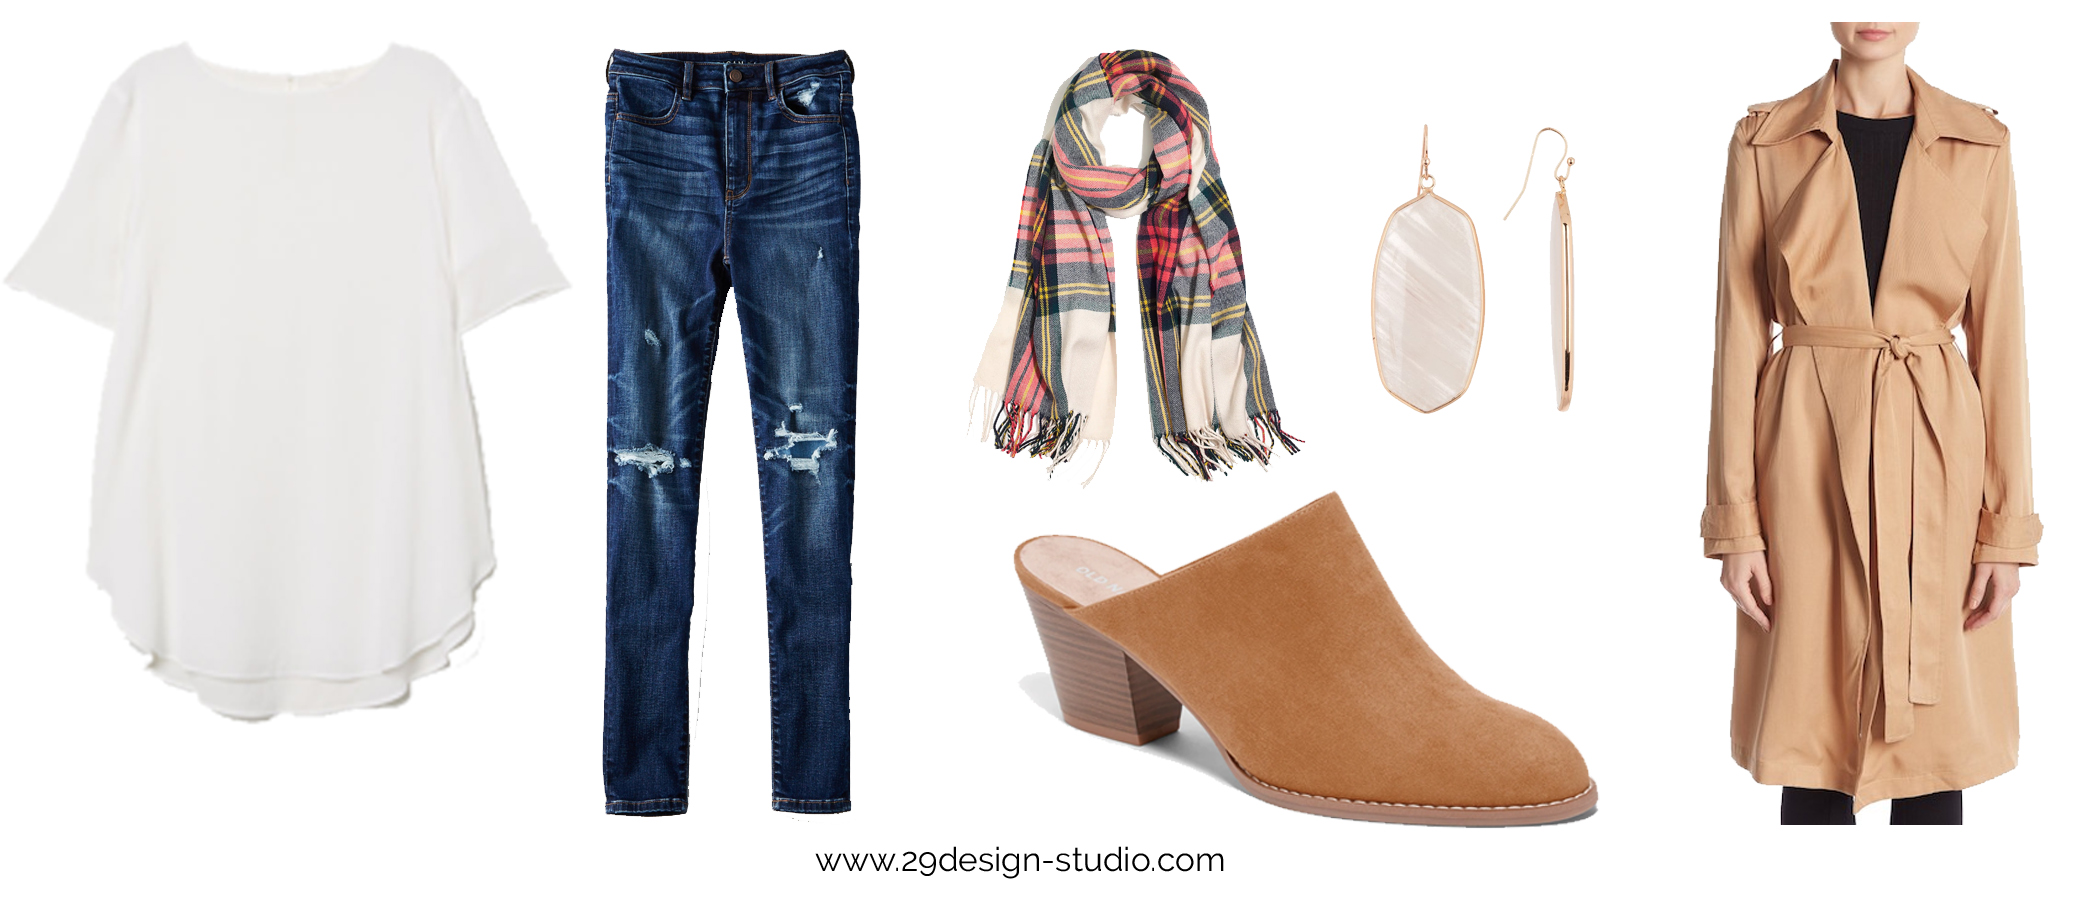 Creped Drapey Top with Destroyed Jeans Outfit Old Navy Mules Plaid Scarf Trench Coat Outfit